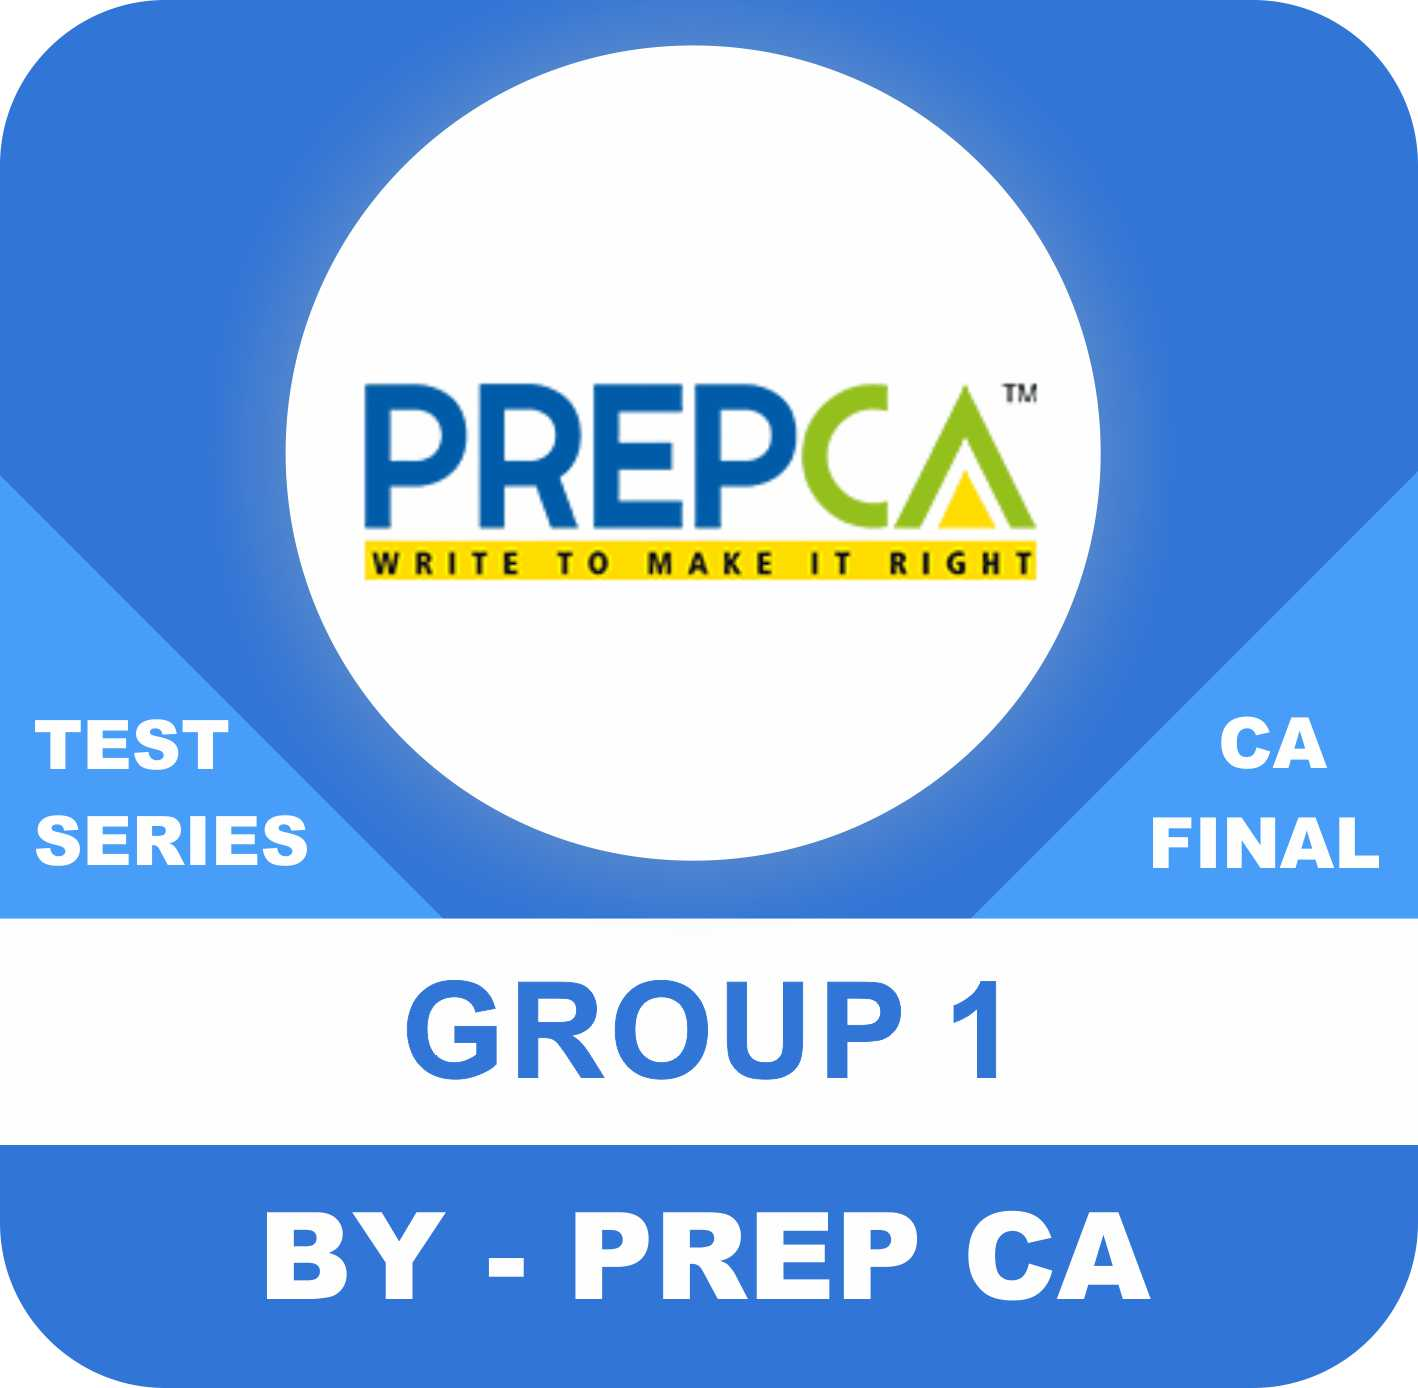 CA Final First Group New Syllabus Test Series in Standard Program by PREPCA